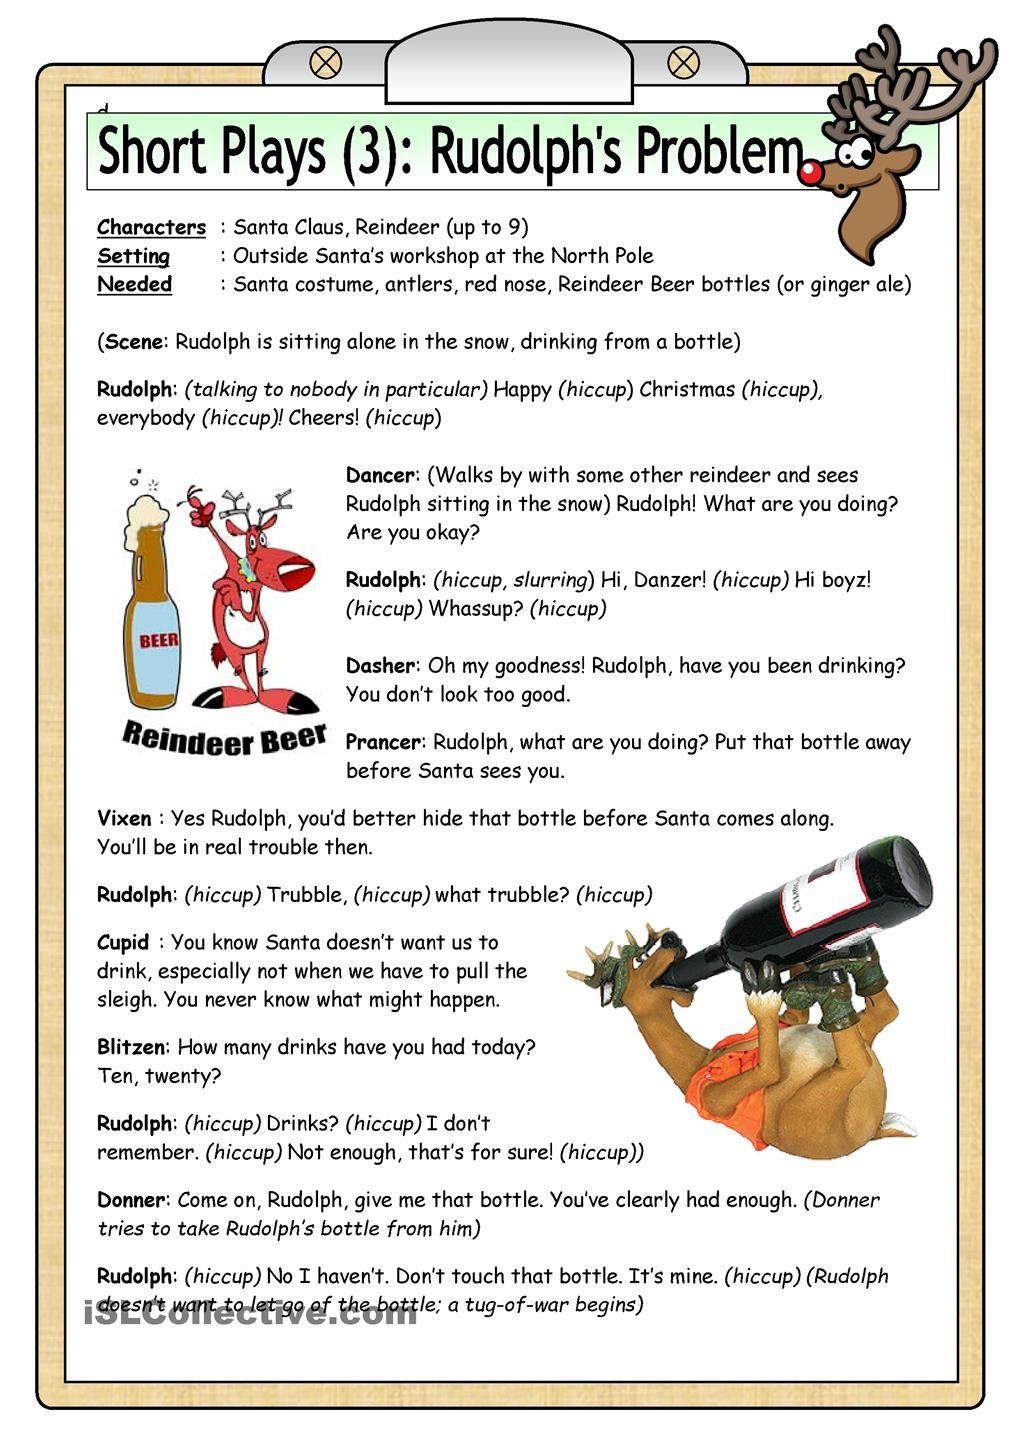 Short Plays 3 Rudolph S Problem Short Play Christmas Worksheets Poetry For Kids [ 1440 x 1018 Pixel ]